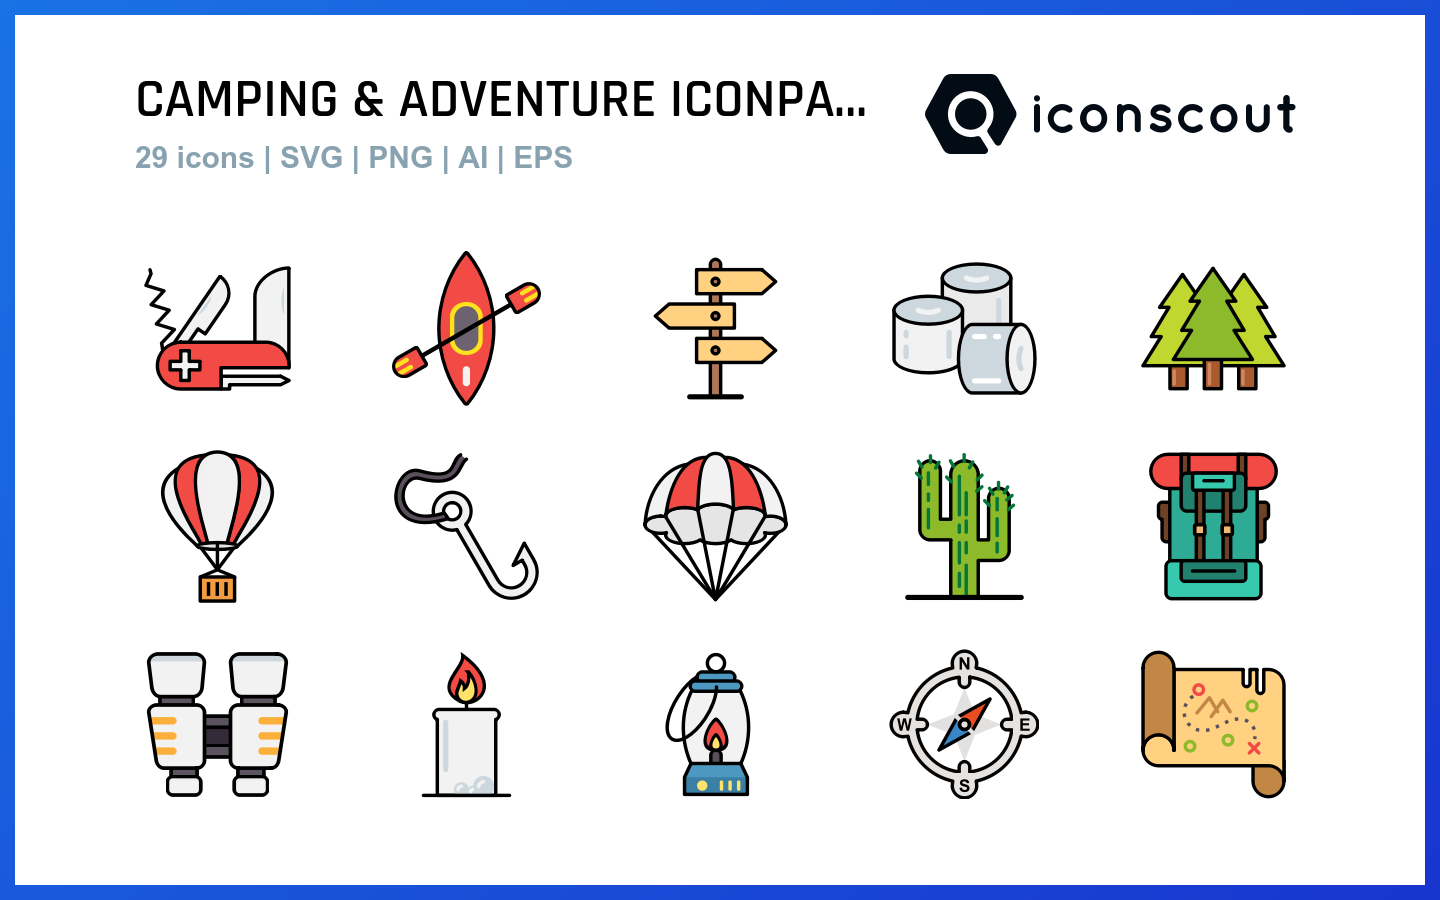 Camping & Adventure icons by Devendra Karkar